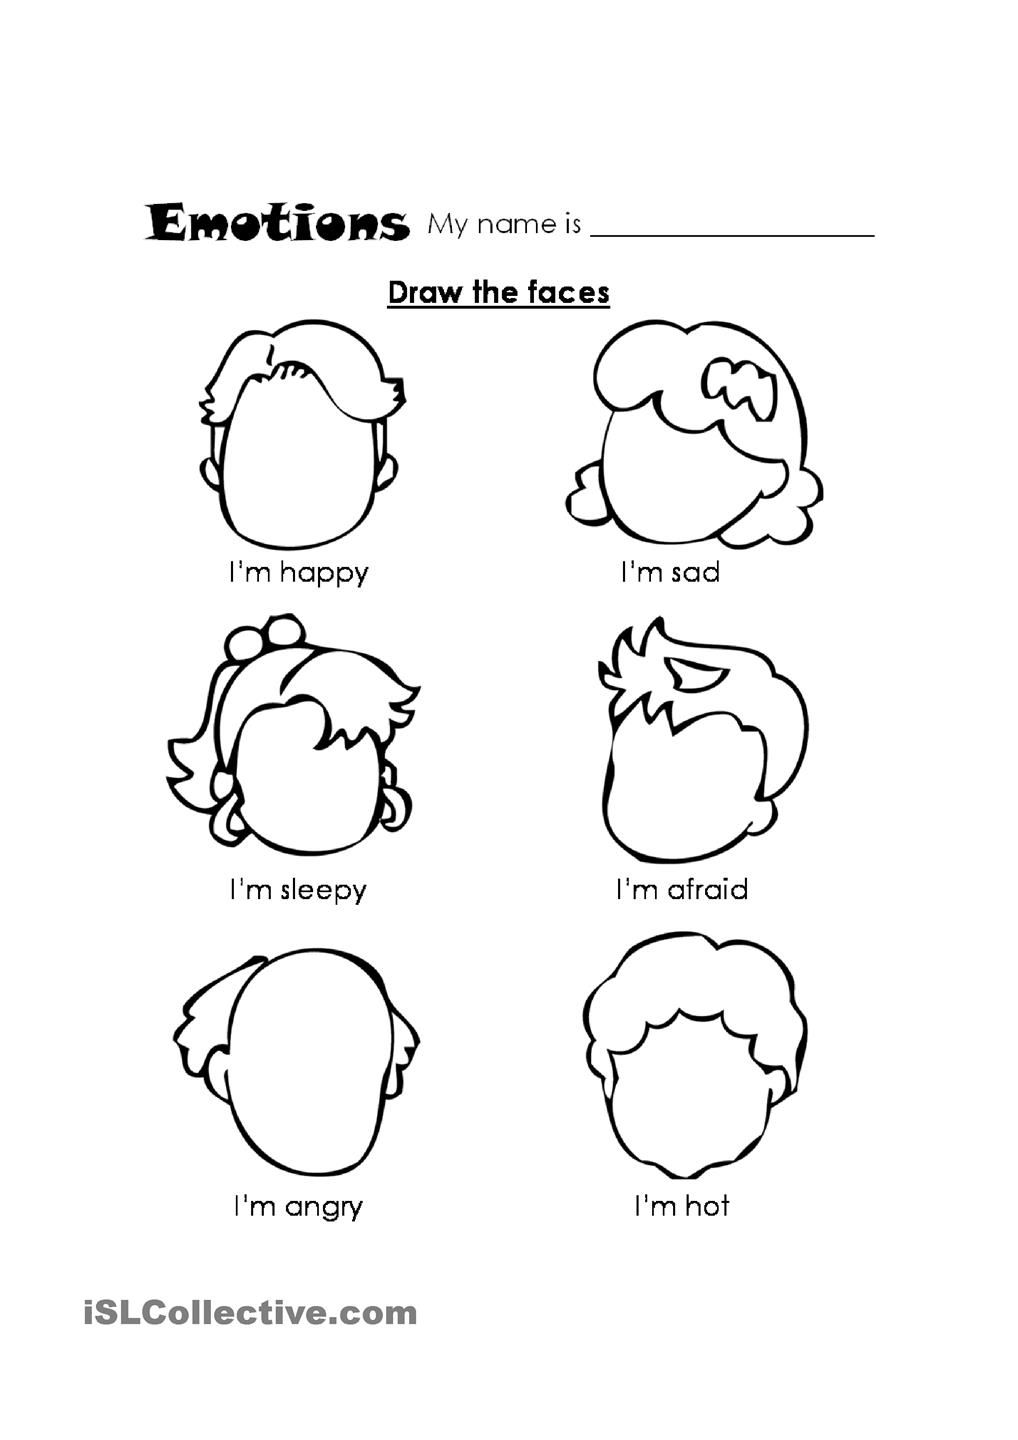 worksheet Emotions Worksheet fiar rag coat emotions and expressions worksheet full 36106 feelings 1 jpg